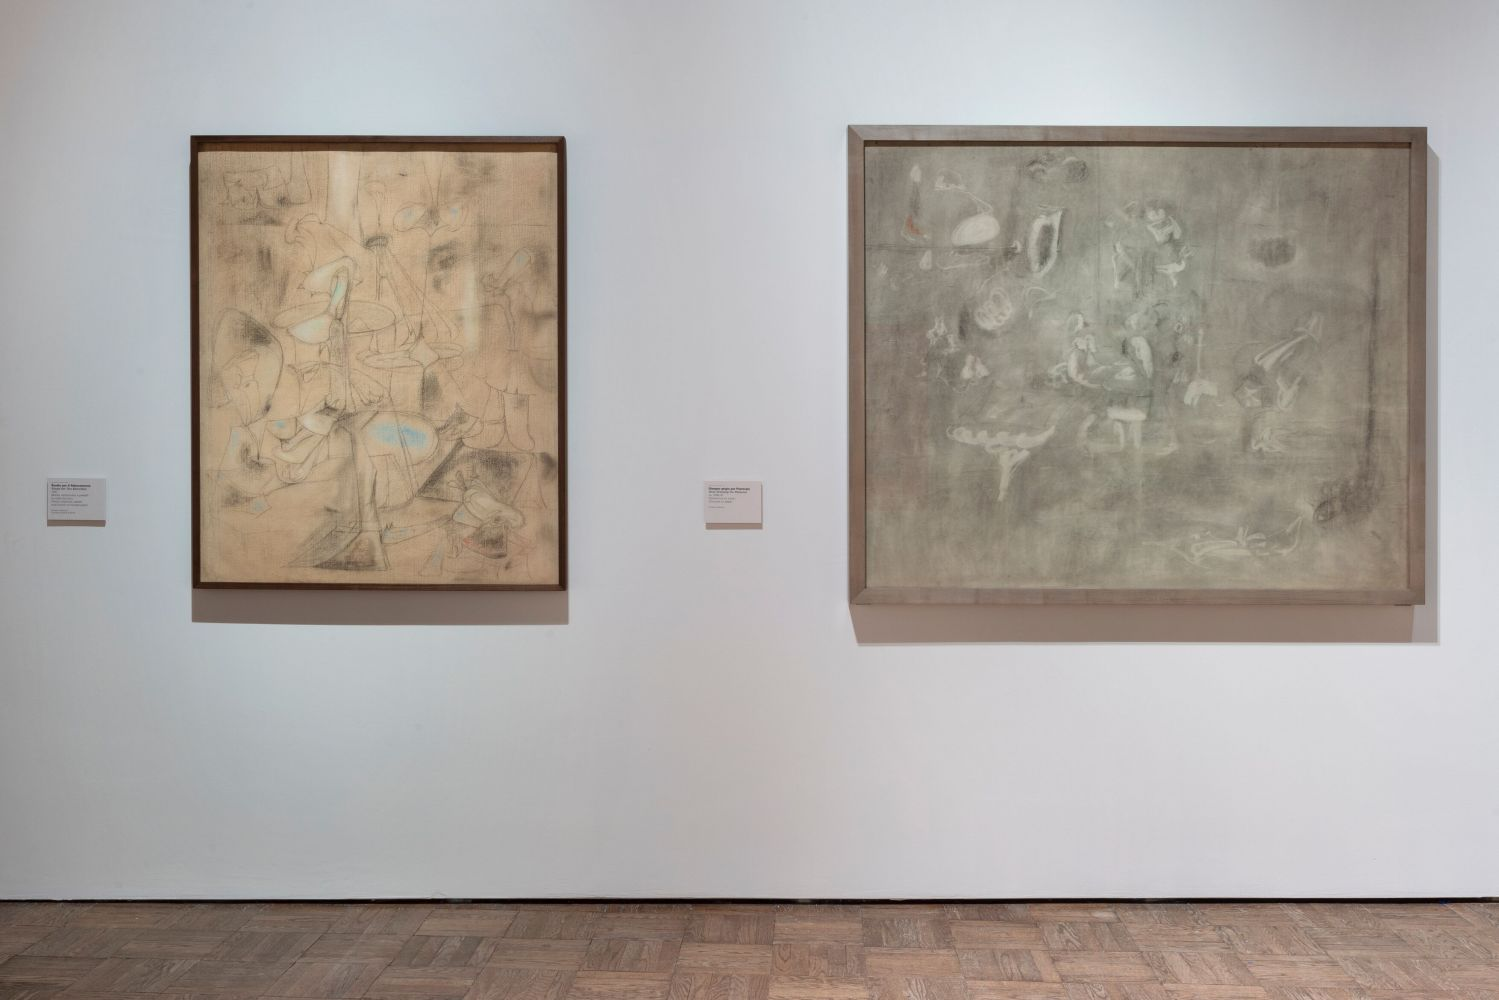 Installation photograph showing two charcoal drawings by Gorky: The Betrothal and Pastoral